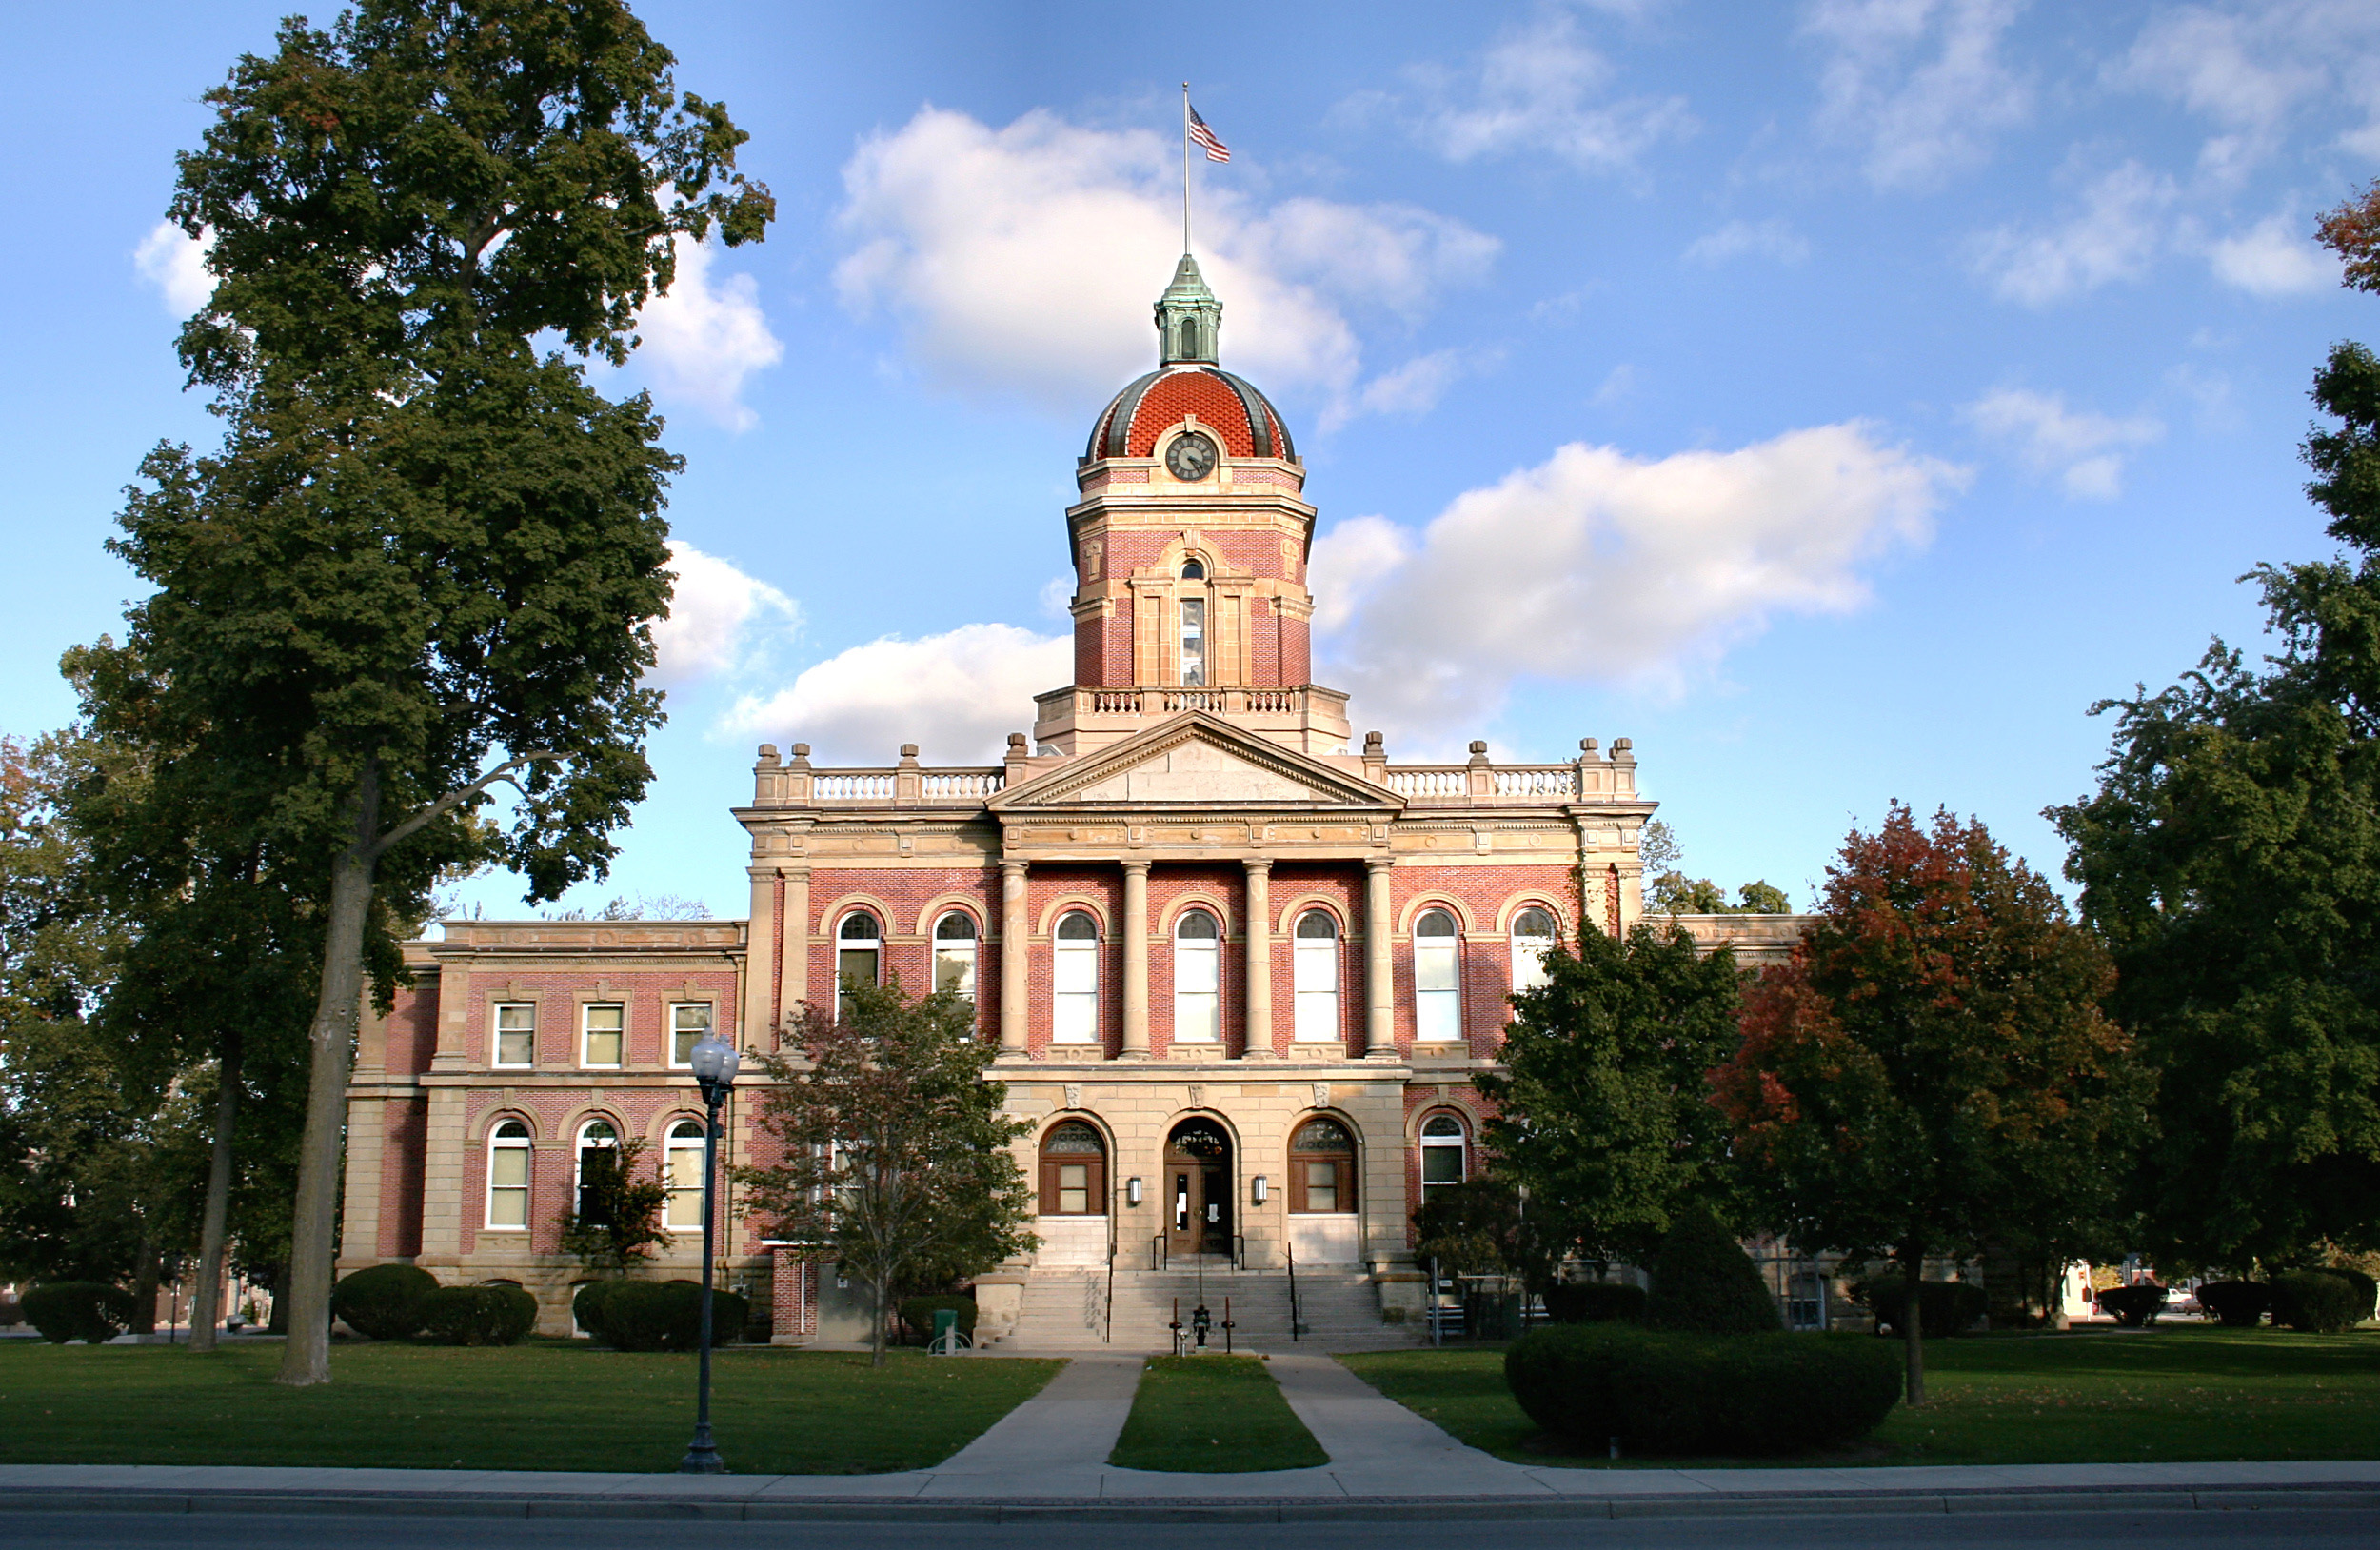 Wondrous Elkhart County Courthouse In Goshen Indiana Image Free Download Free Architecture Designs Scobabritishbridgeorg